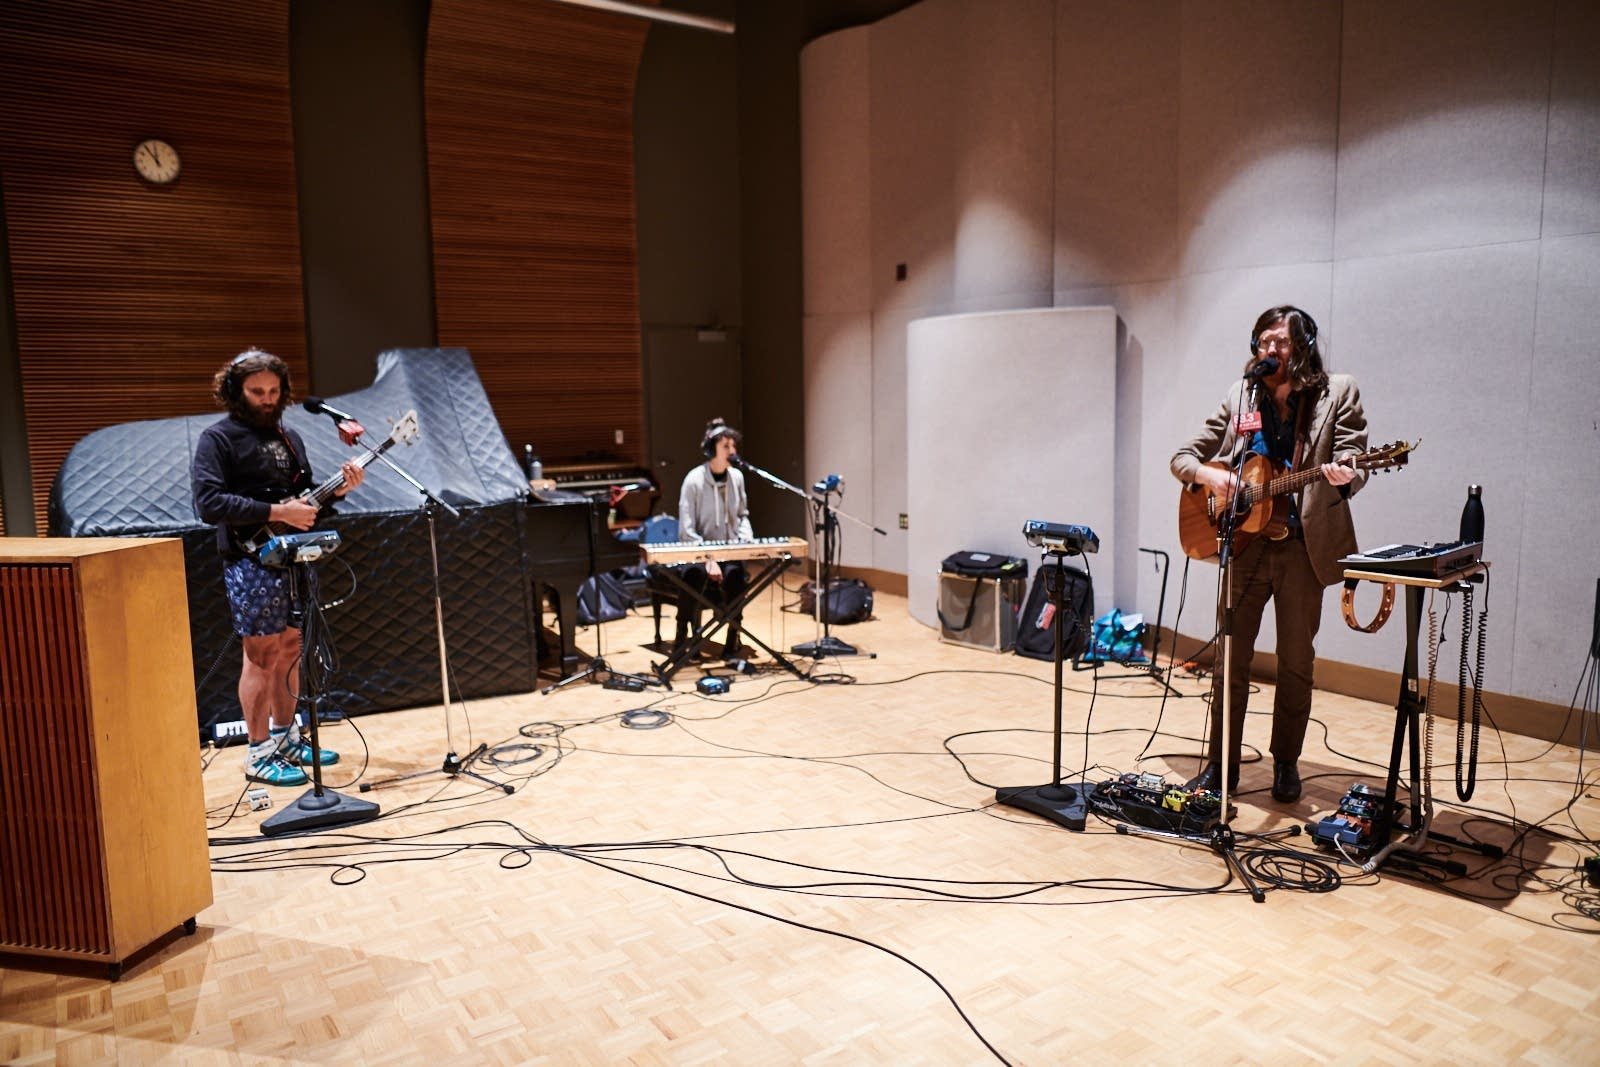 Okkervil River perform in The Current studio